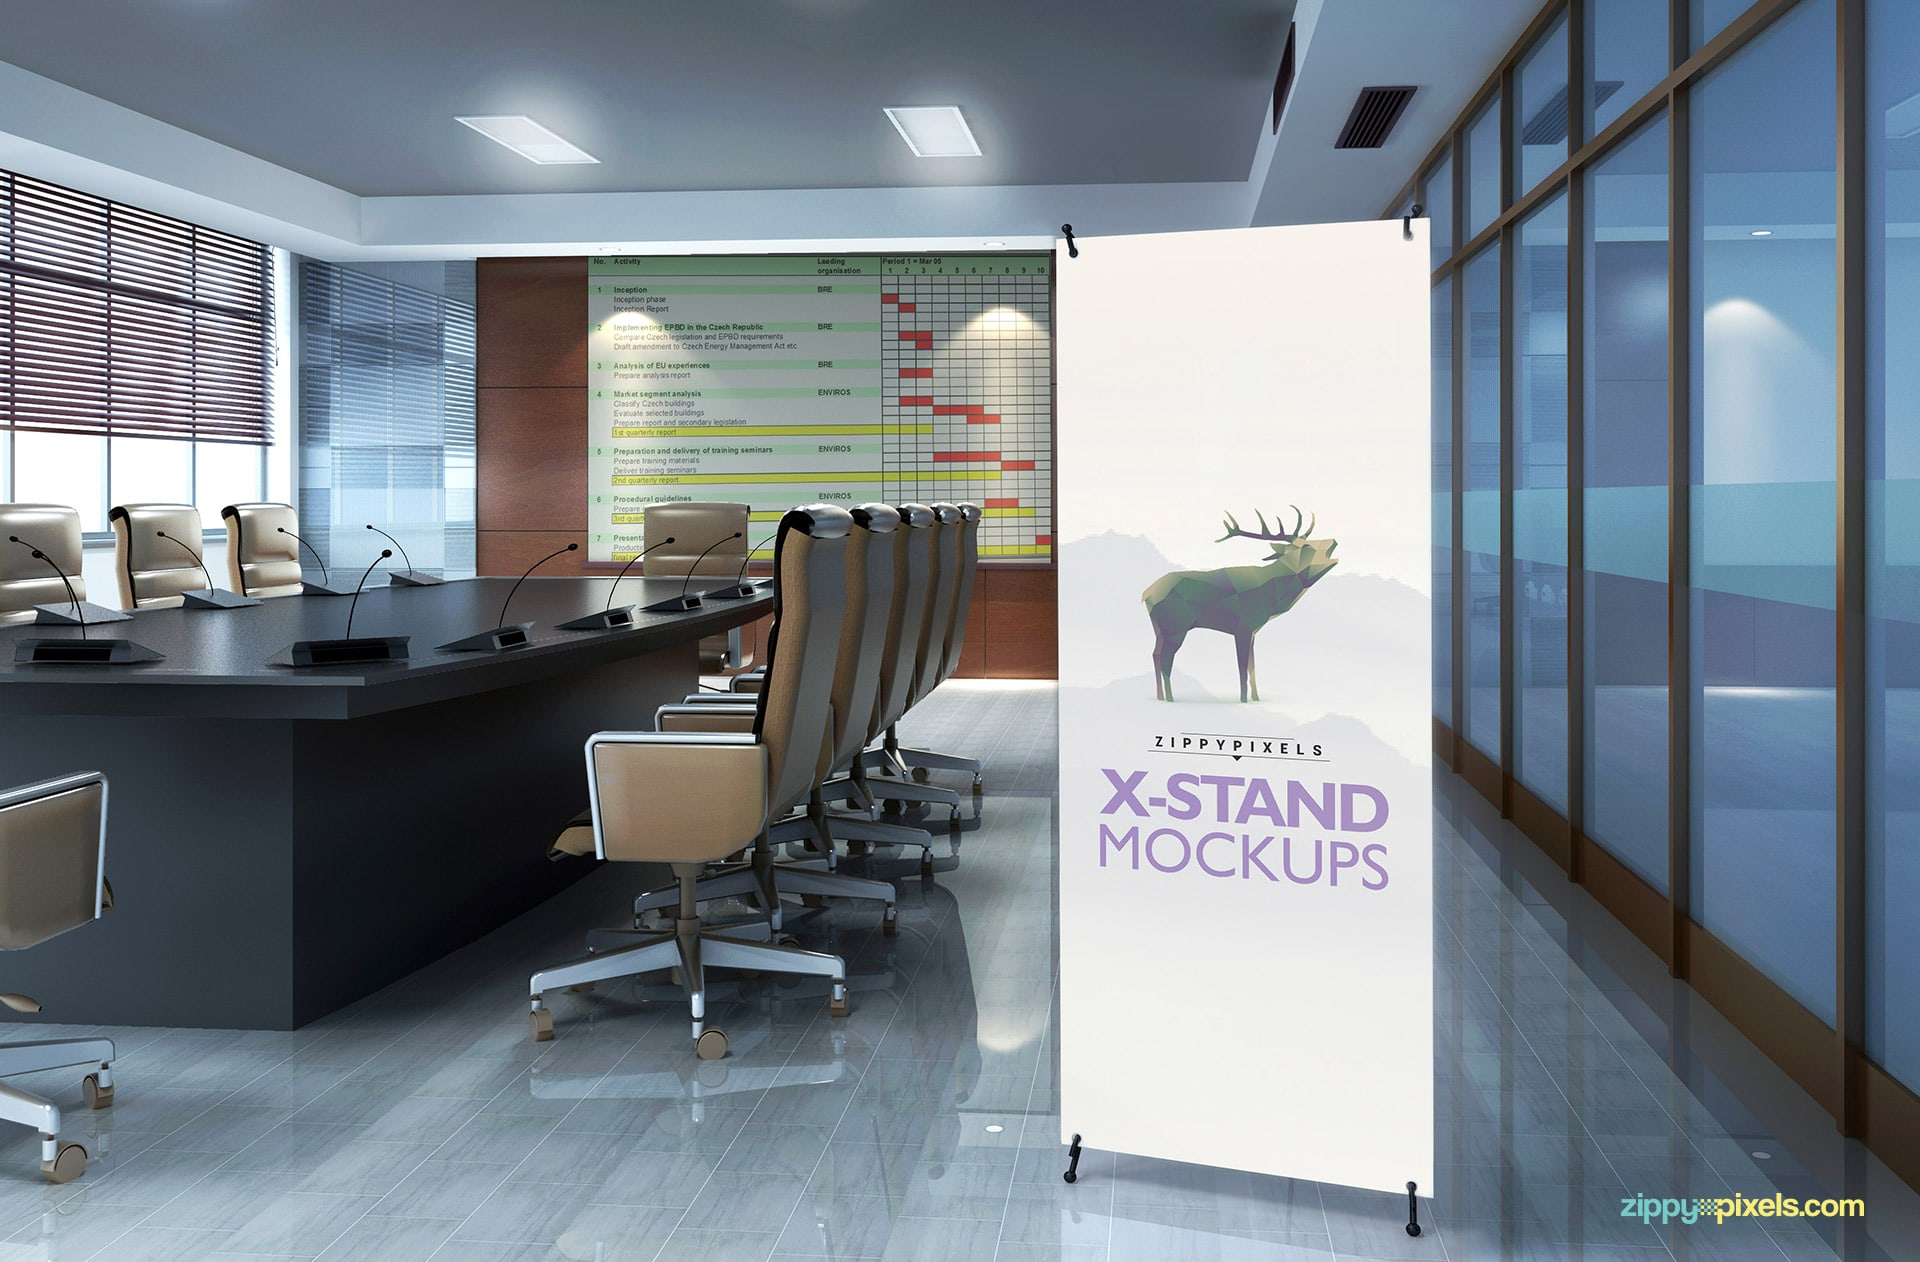 X-display banner in a meeting room enviroment.